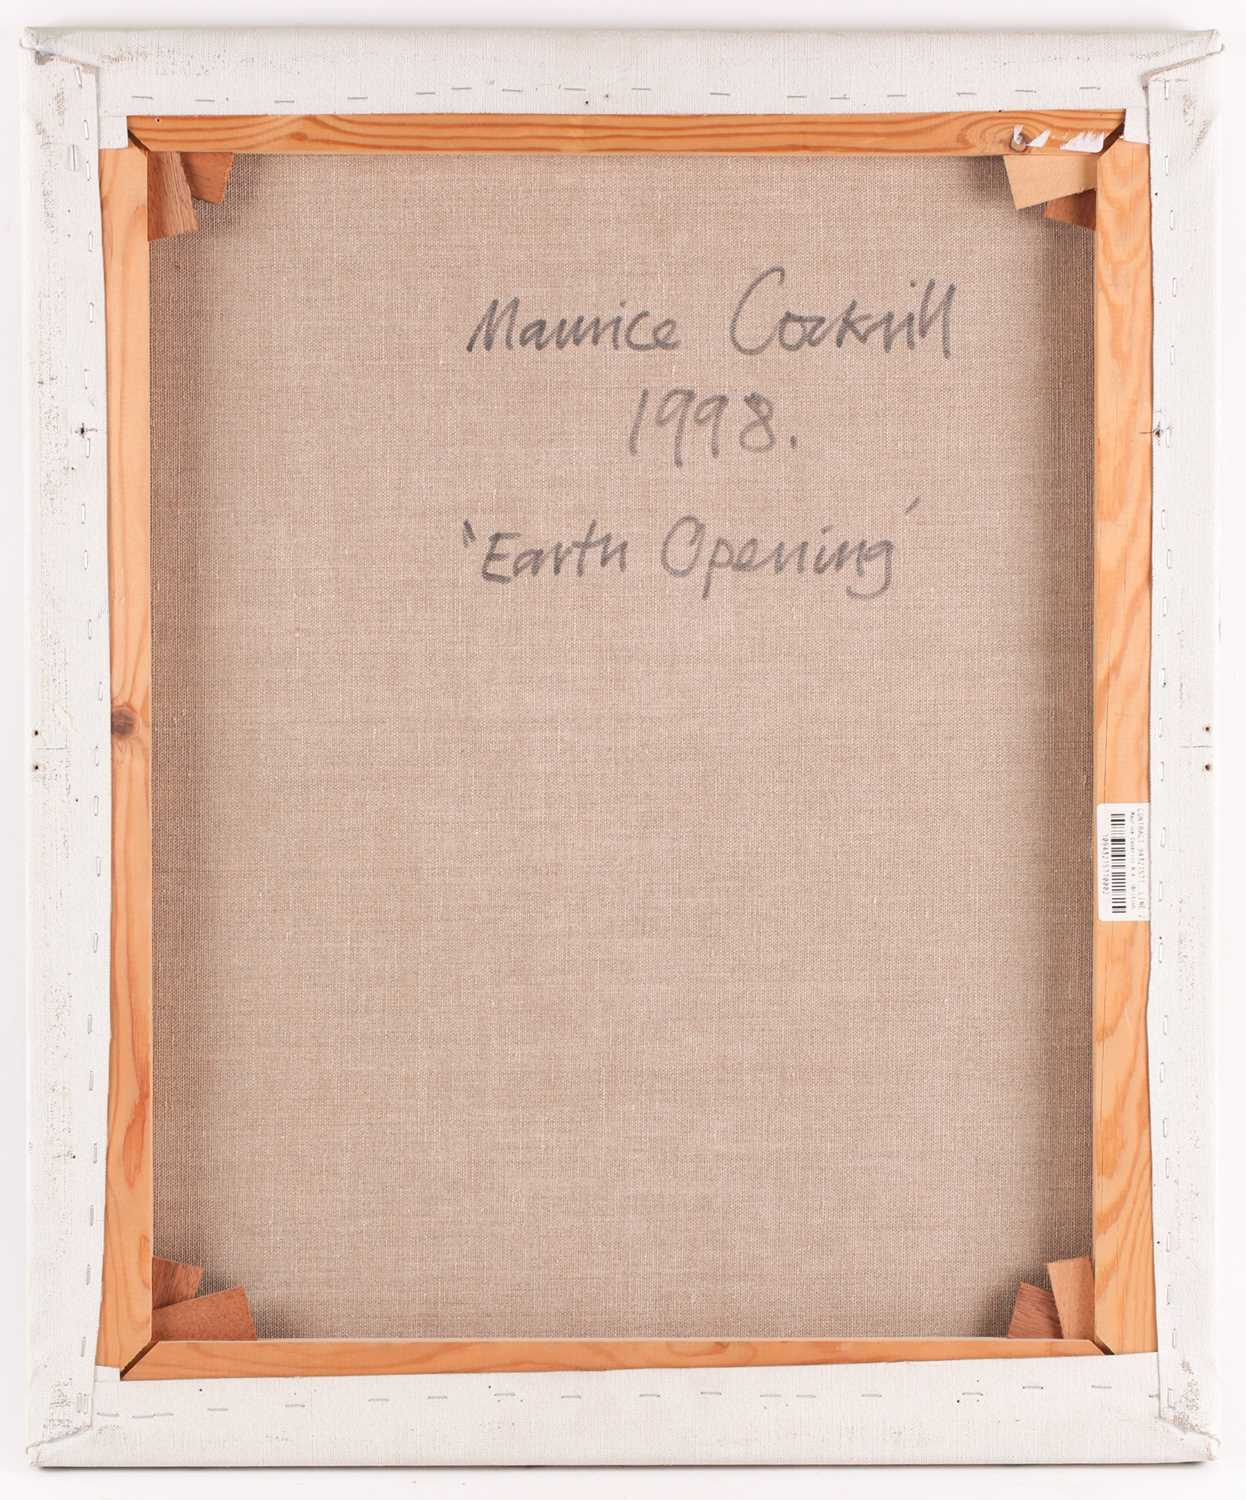 Maurice Cockrill RA (1936-2013), an unframed abstract oil on canvas, 'Earth Opening', signed verso - Image 3 of 3